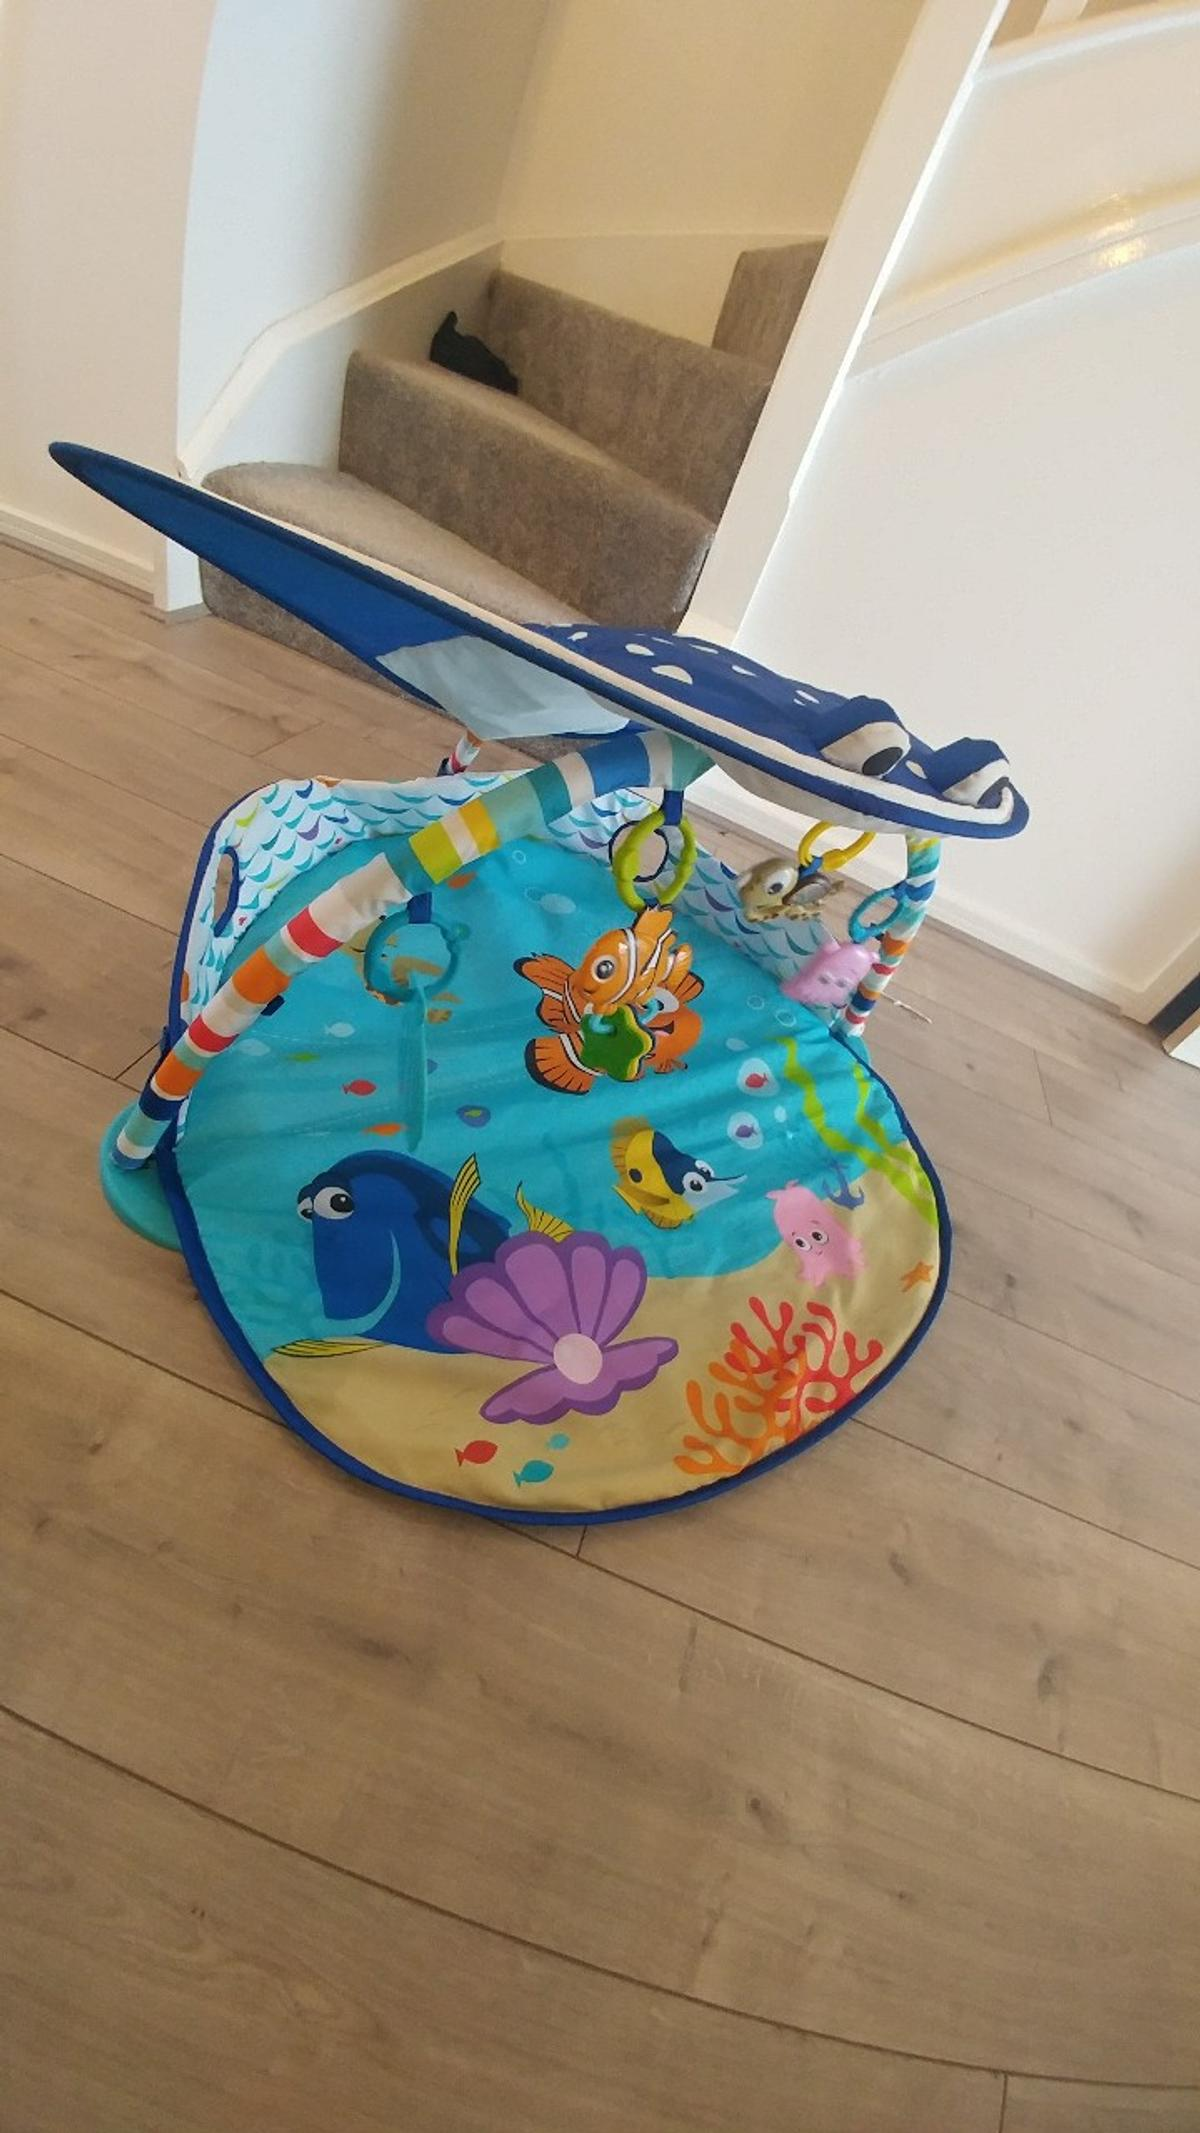 Peachy Finding Nemo Play Gym In Salford Fur 20 00 Alphanode Cool Chair Designs And Ideas Alphanodeonline